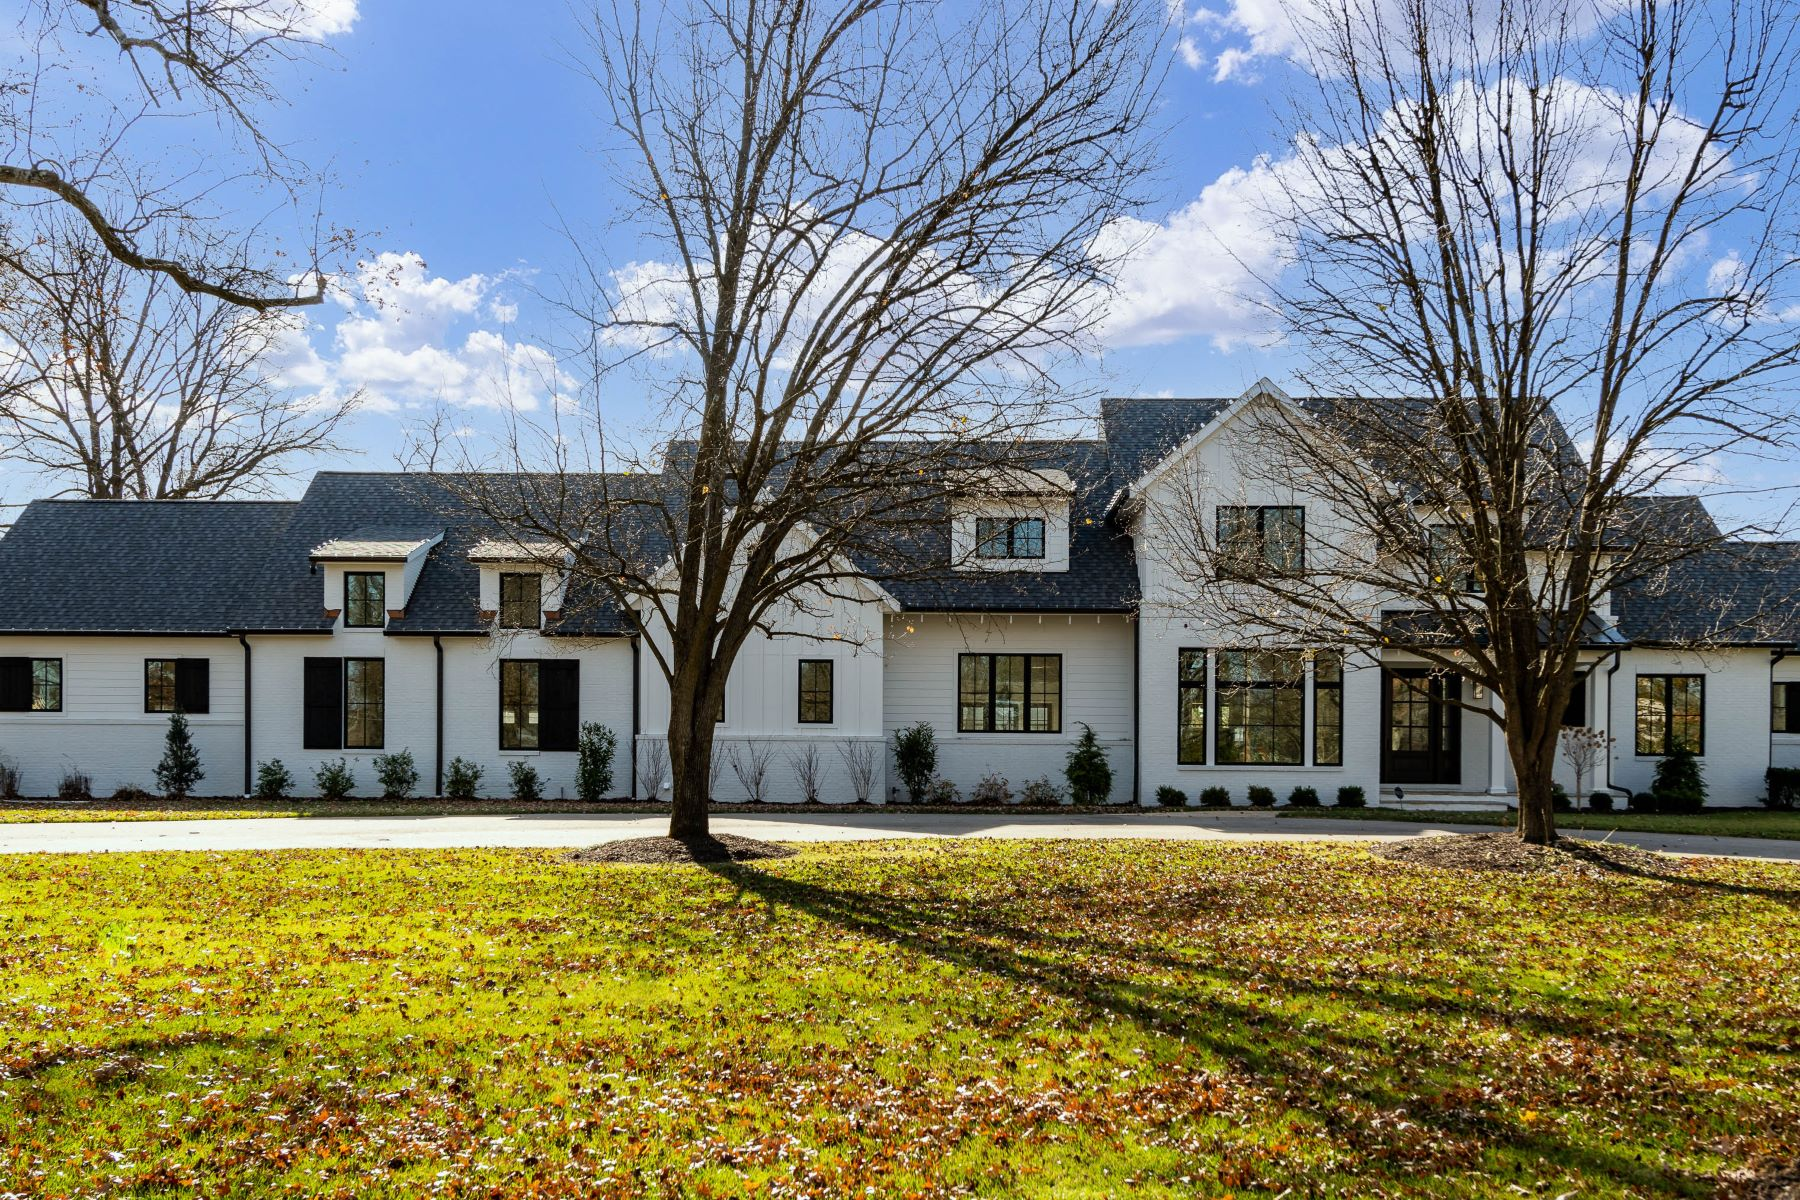 Single Family Homes for Sale at Modern Farmhouse New Construction in Frontenac 11600 Clayton Road, Frontenac, Missouri 63131 United States